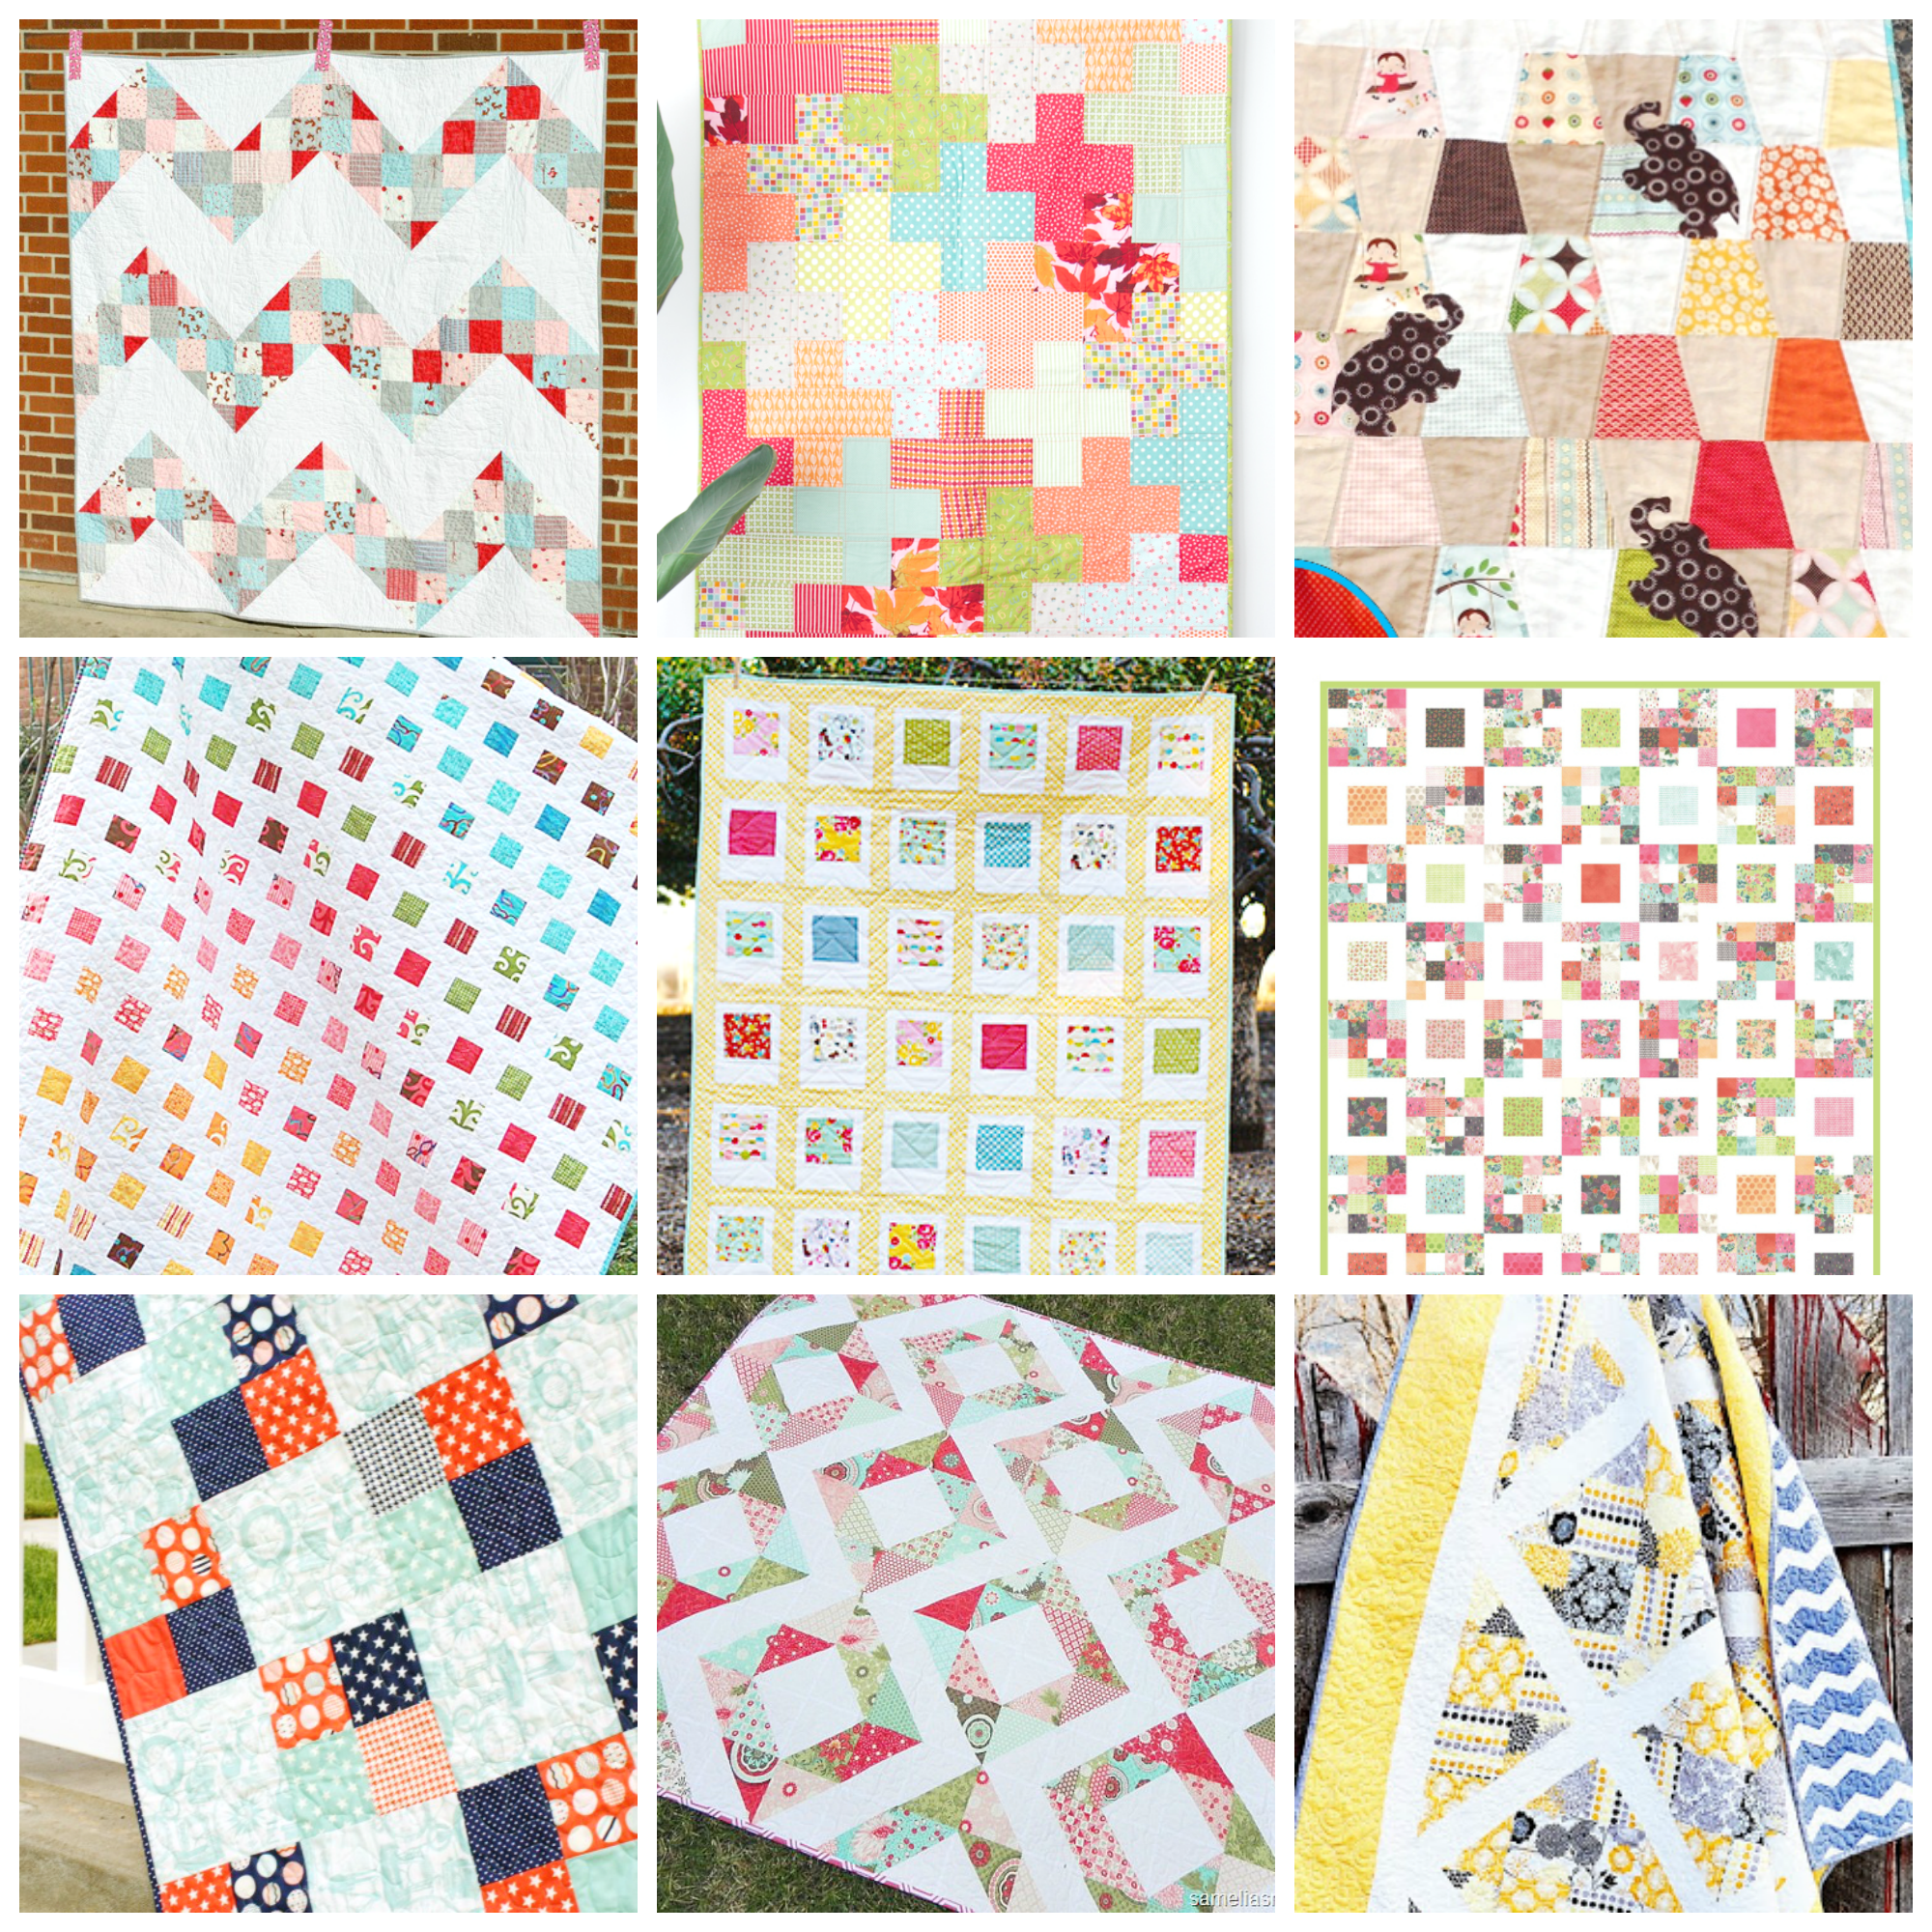 Free Charm Pack Quilt Patterns   U Create | Charm pack quilt